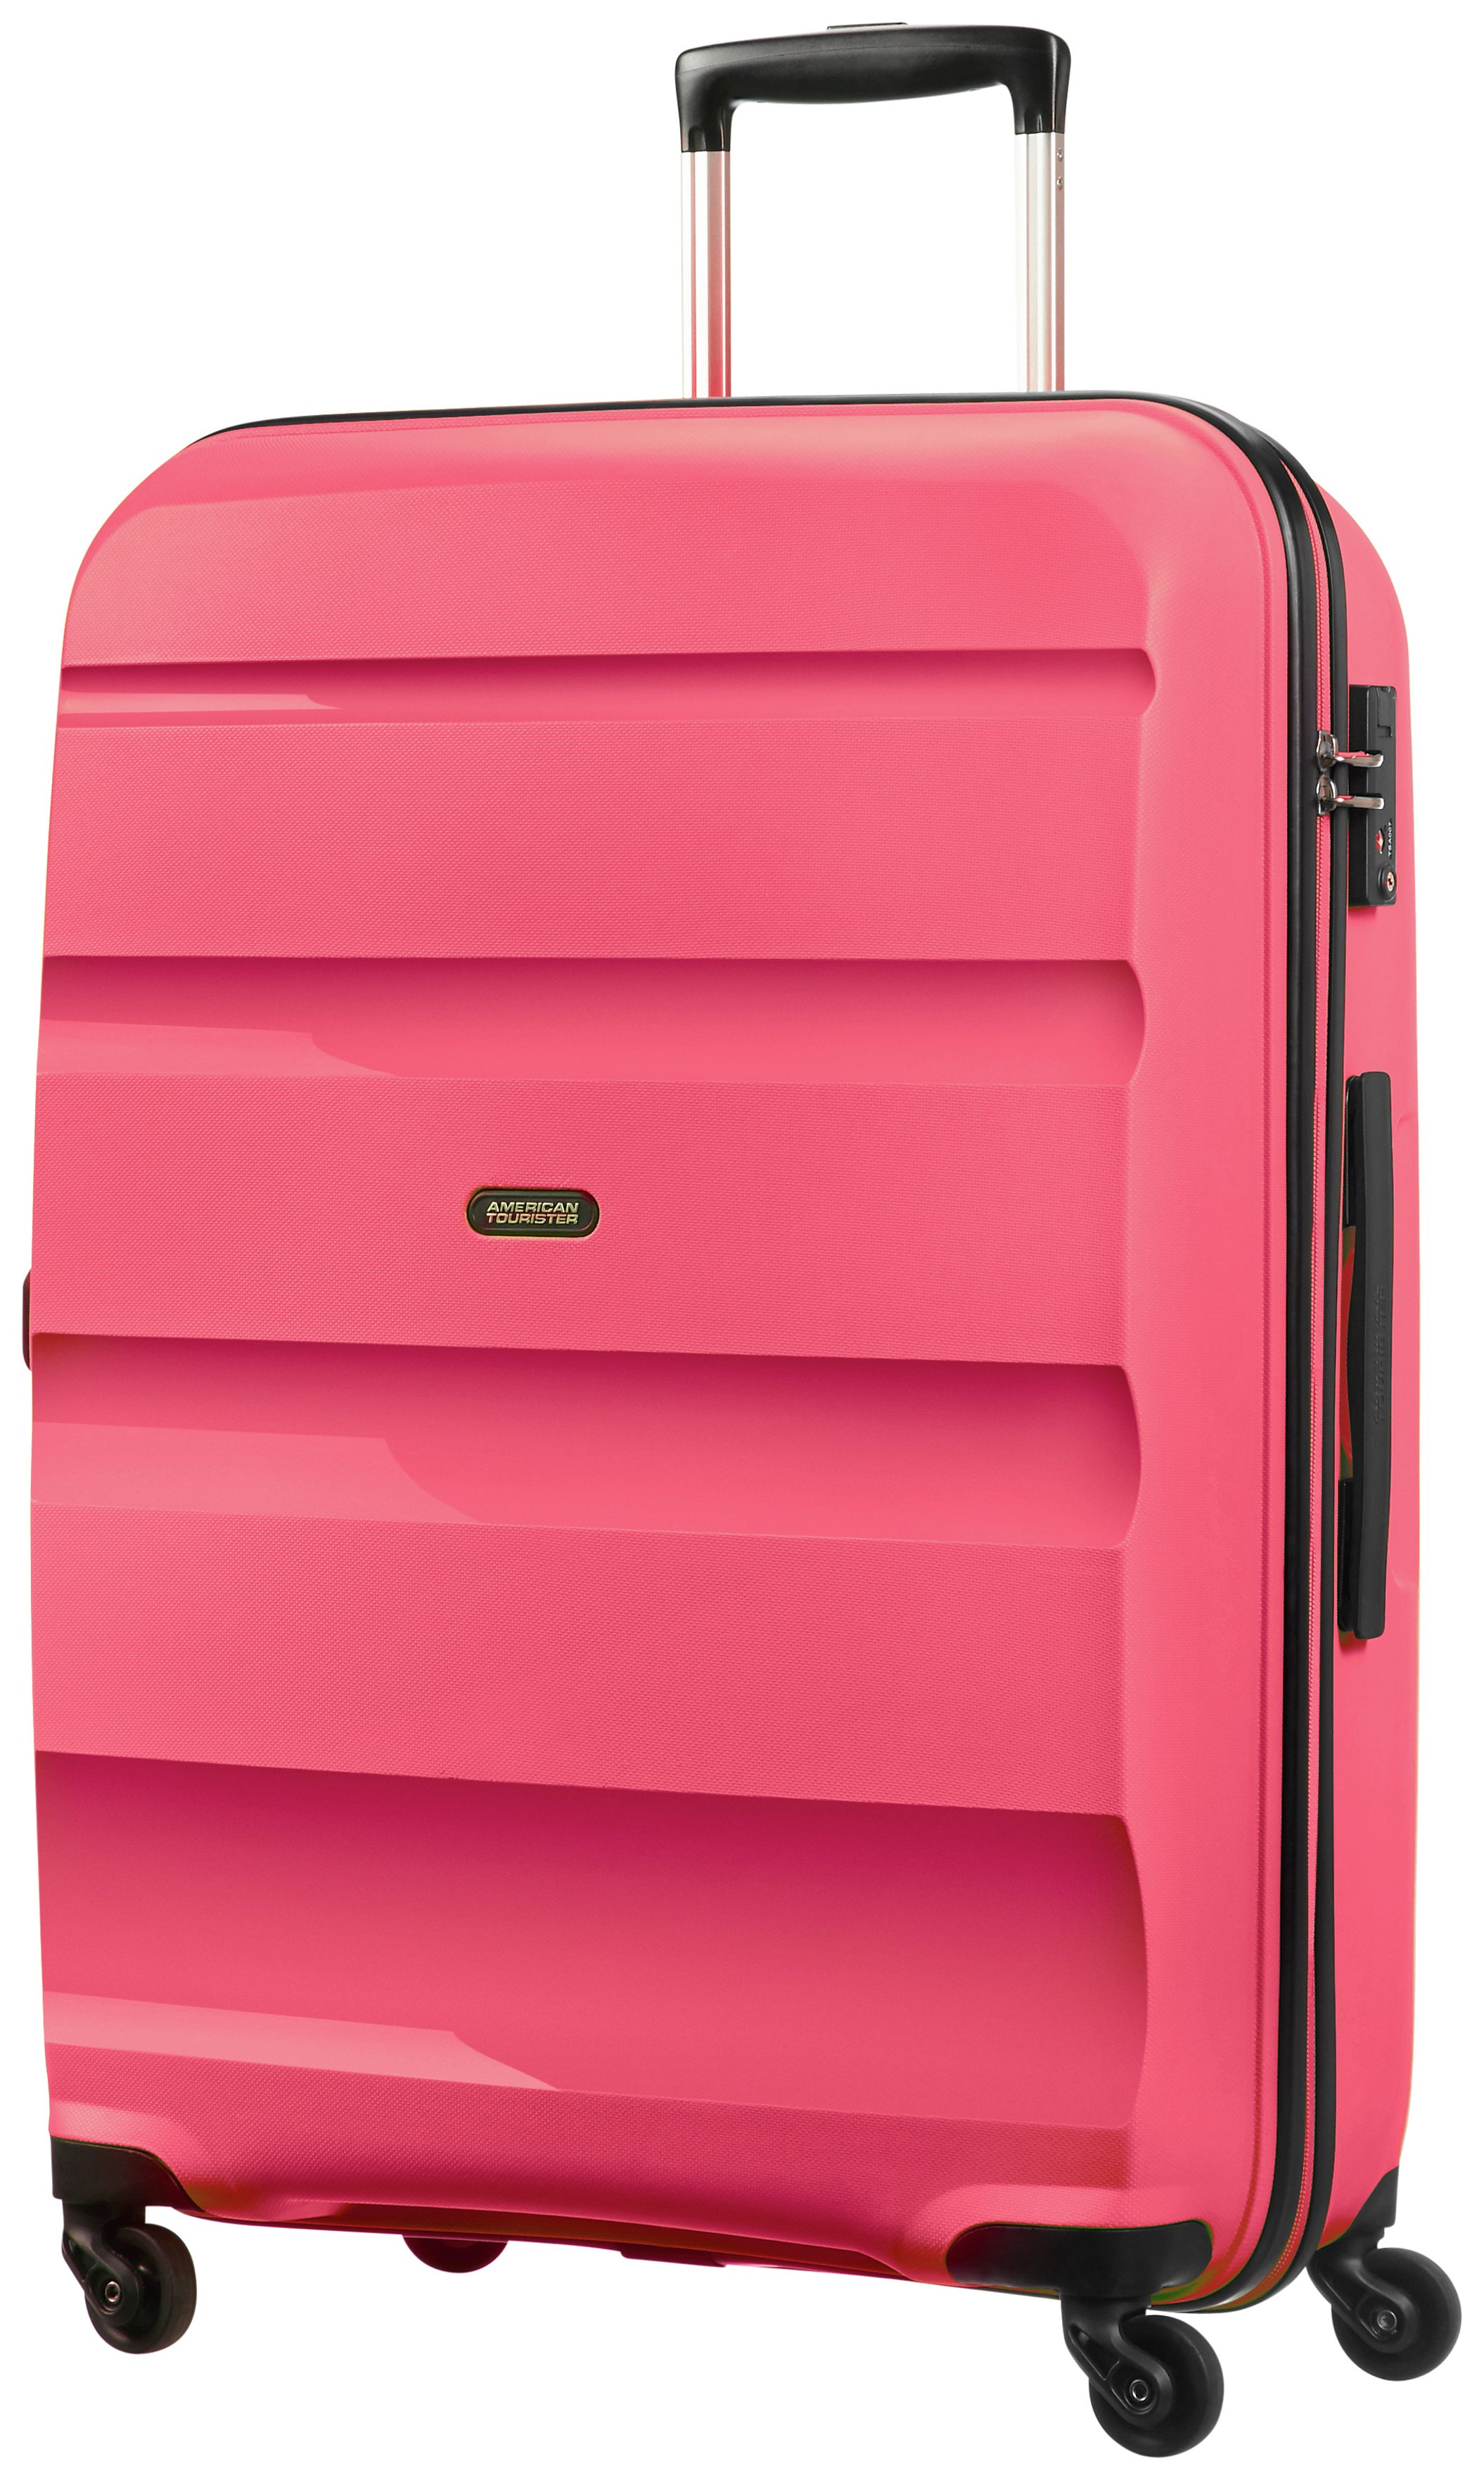 Image of American Tourister Bon Air 91 litre 4 Wheel Pink Suitcase